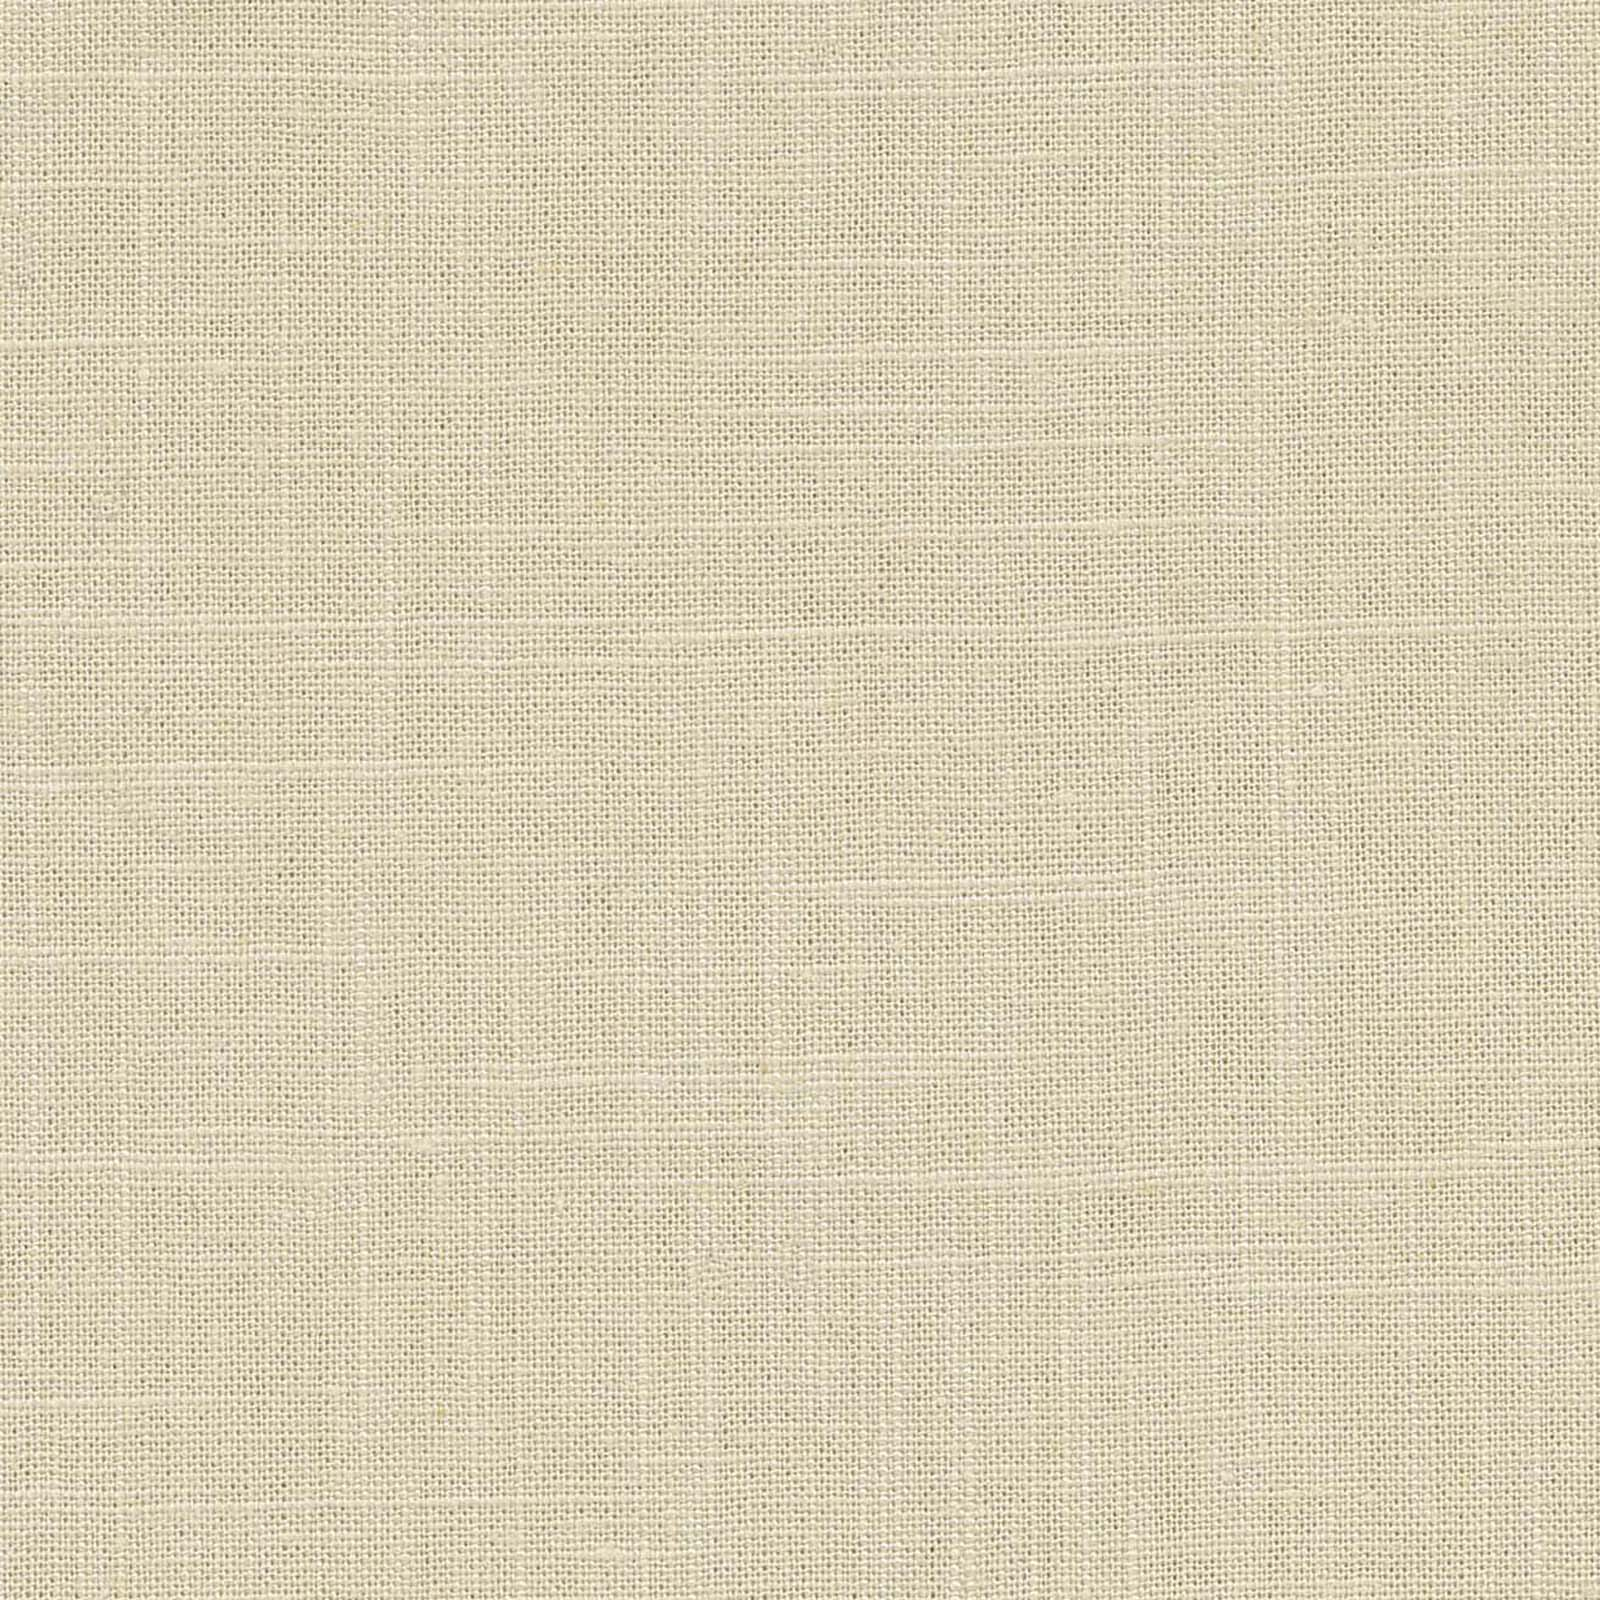 Home decor solid fabric signature series linen linnen joann for Decor 55 fabric